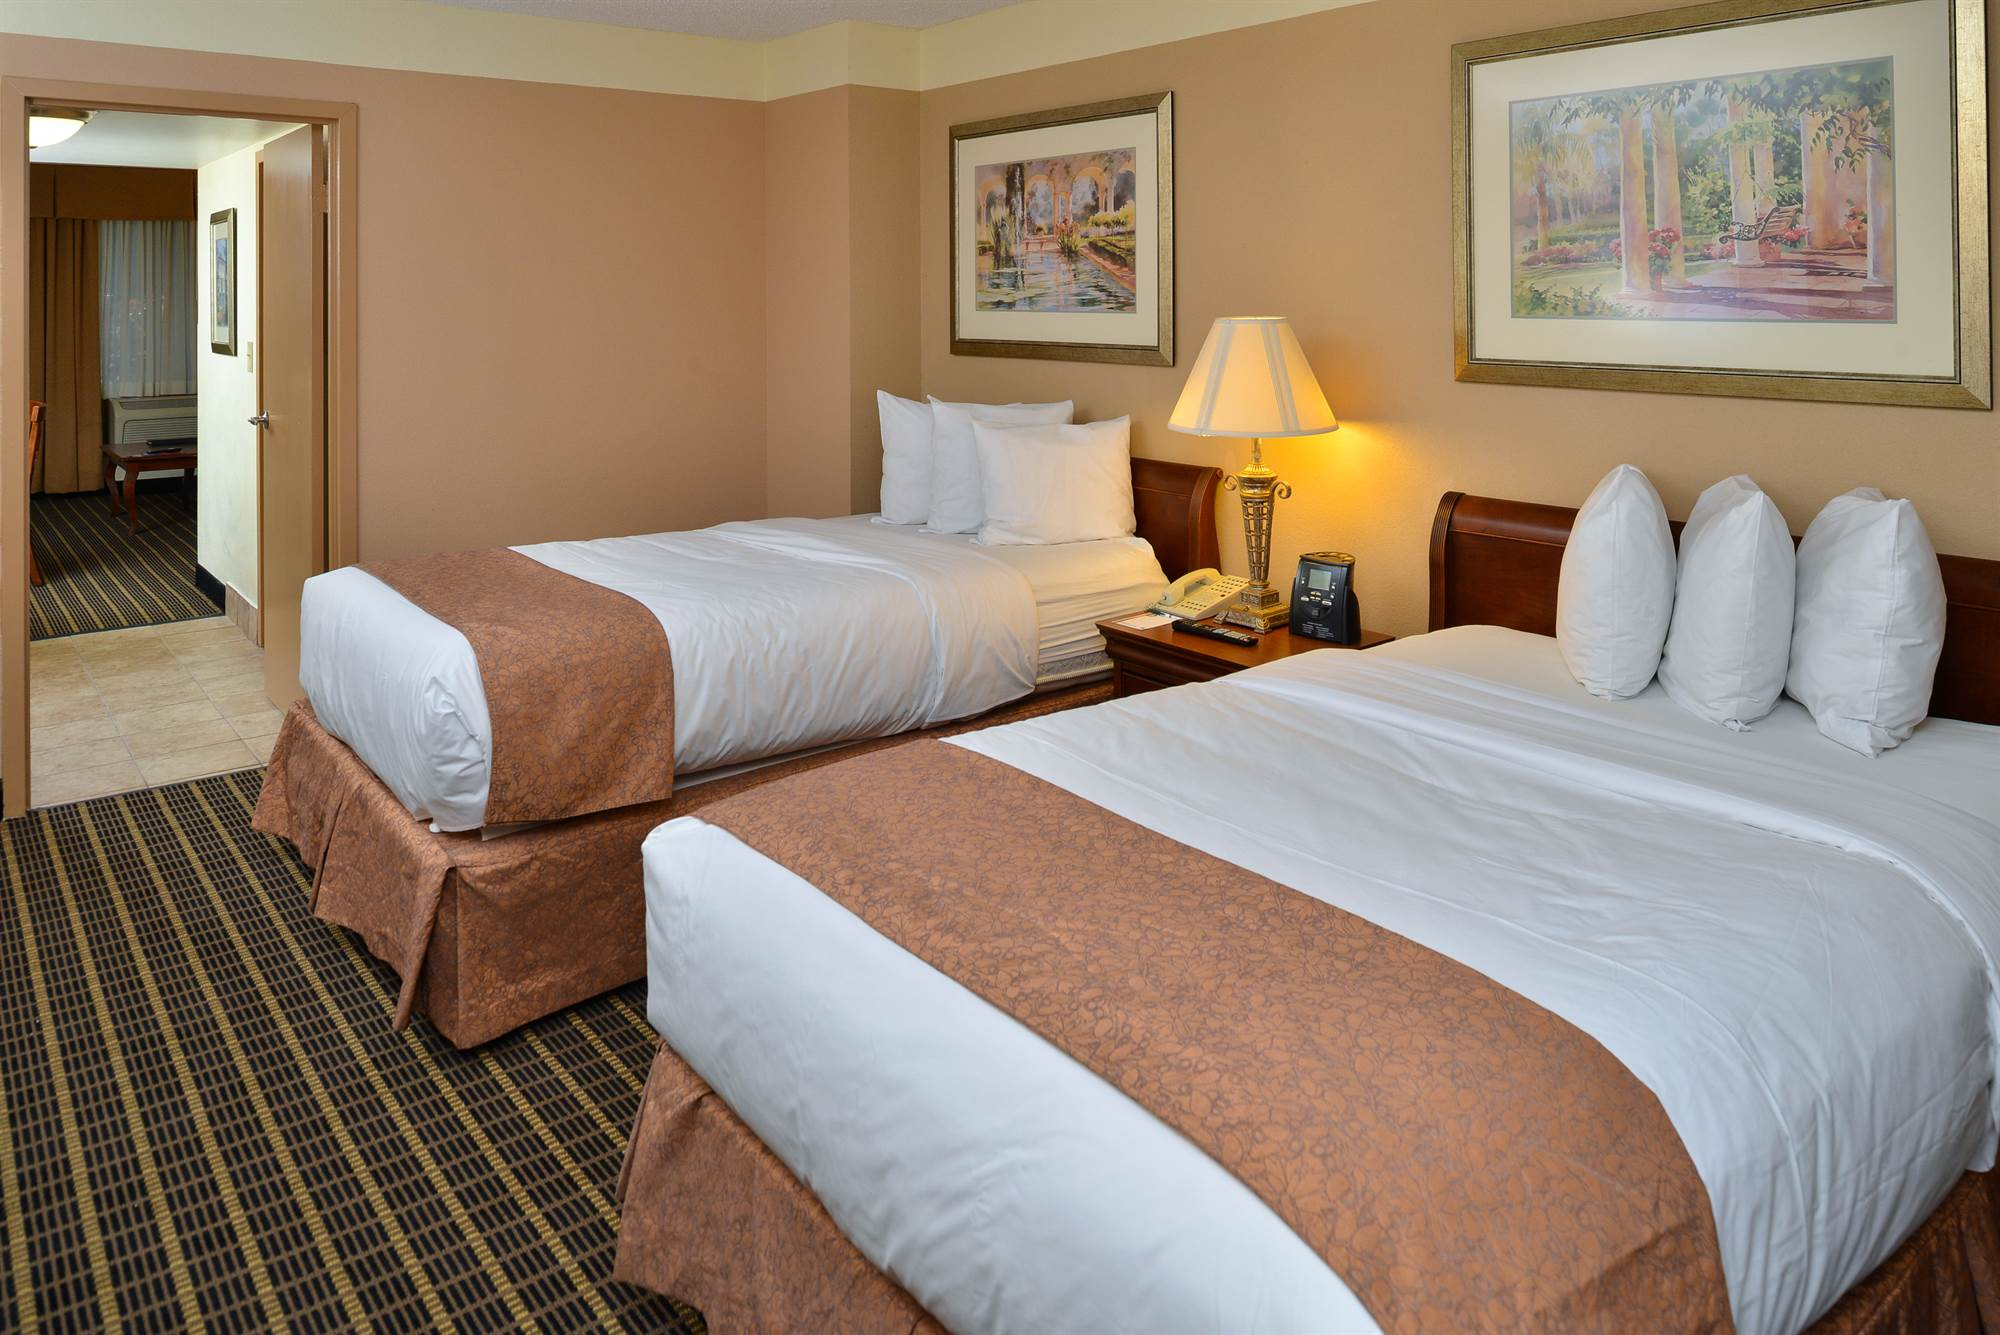 Orlando Extended Stay Hotels in Kissimmee, Florida